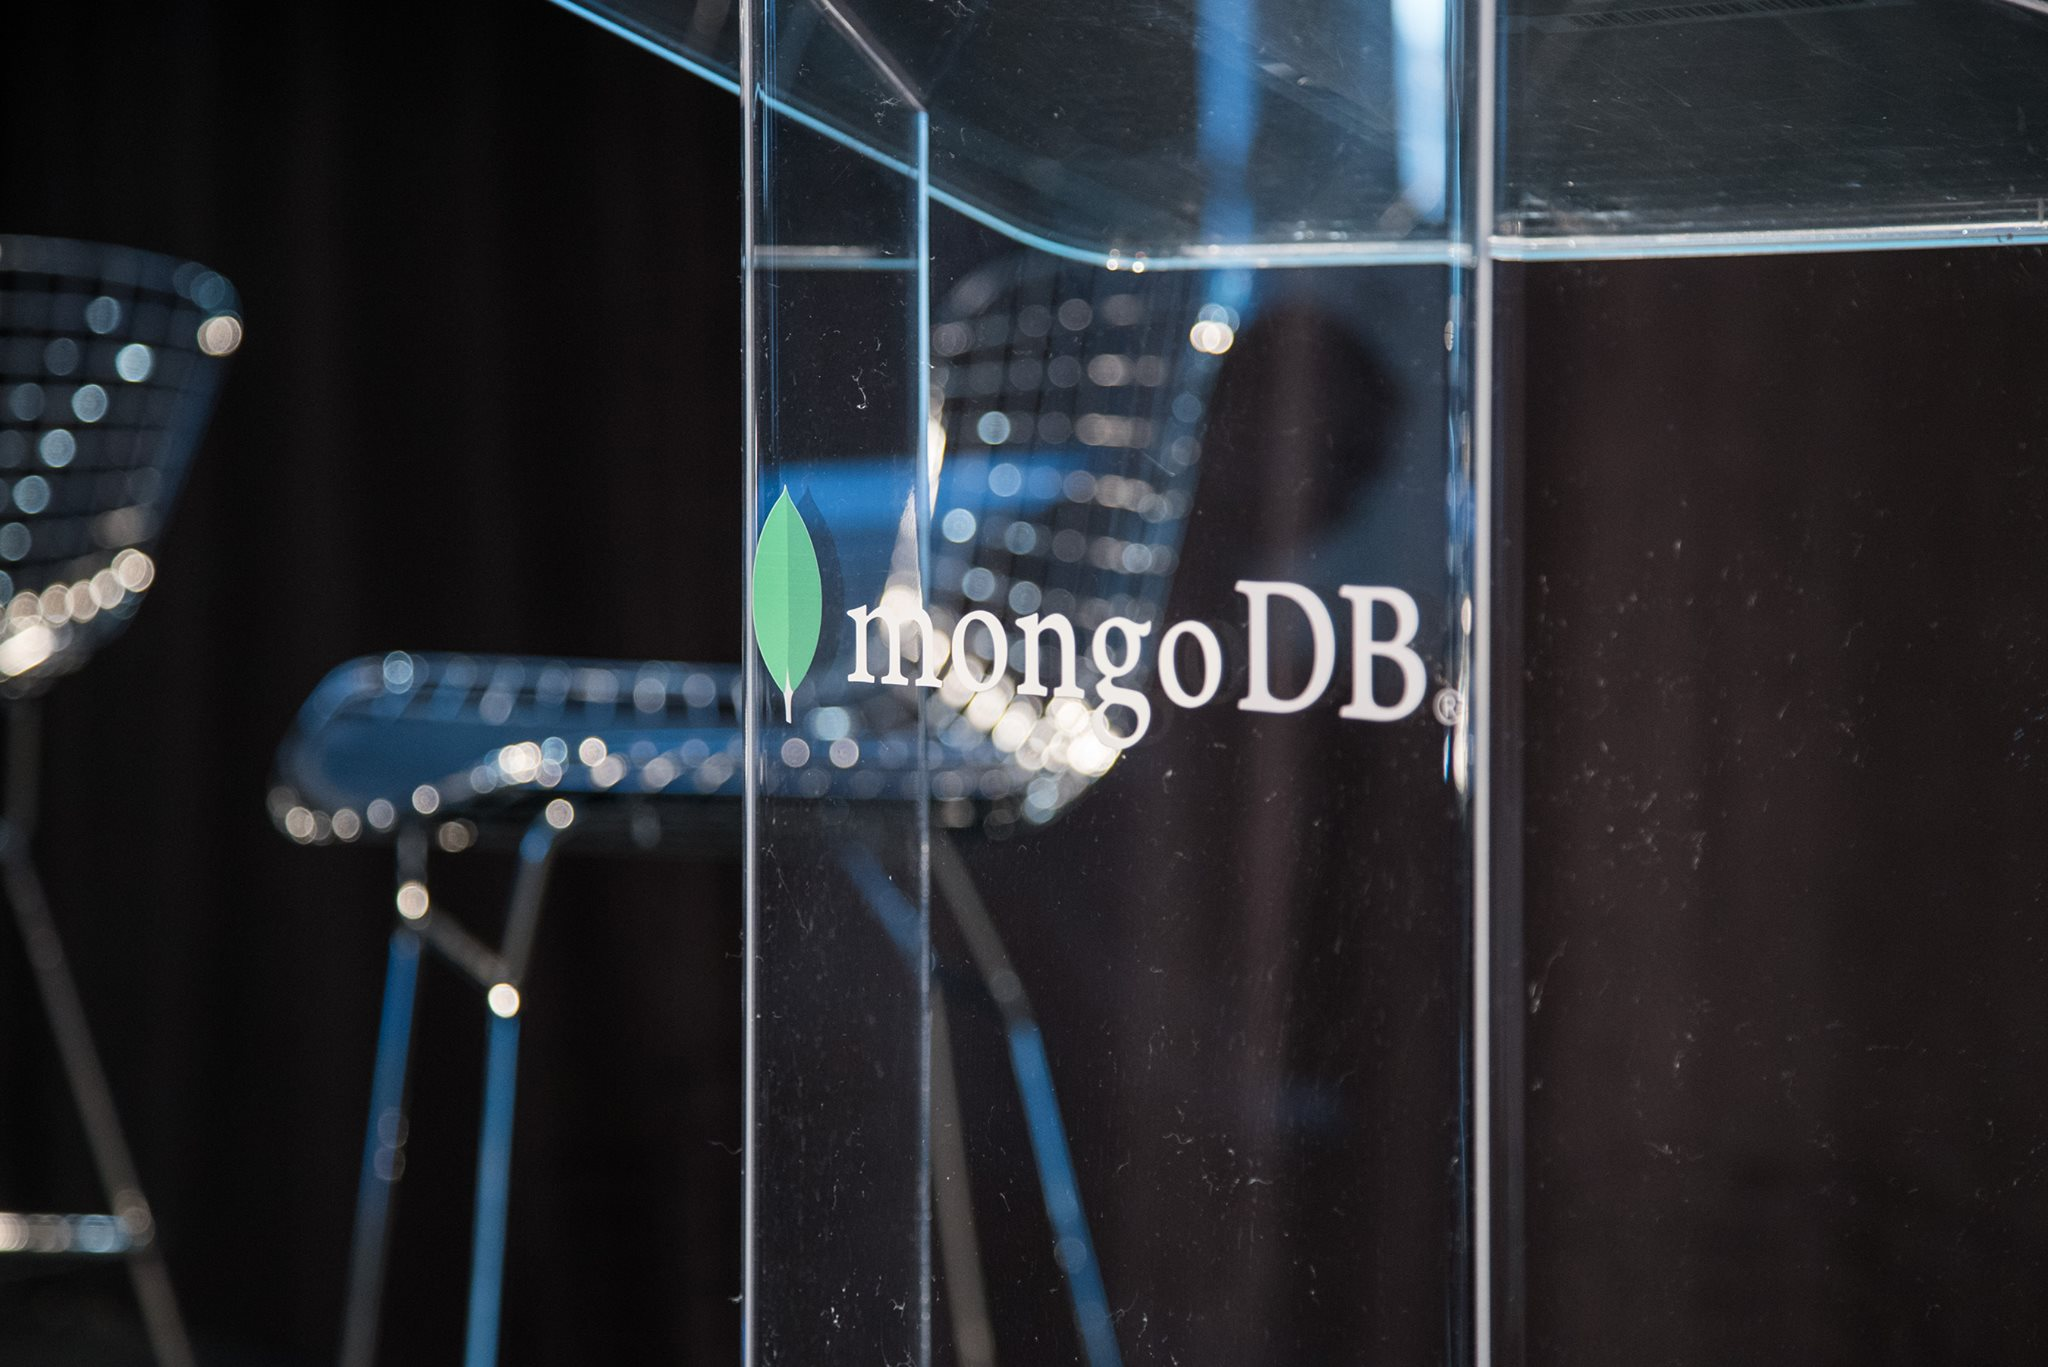 Database Provider MongoDB Files For IPO